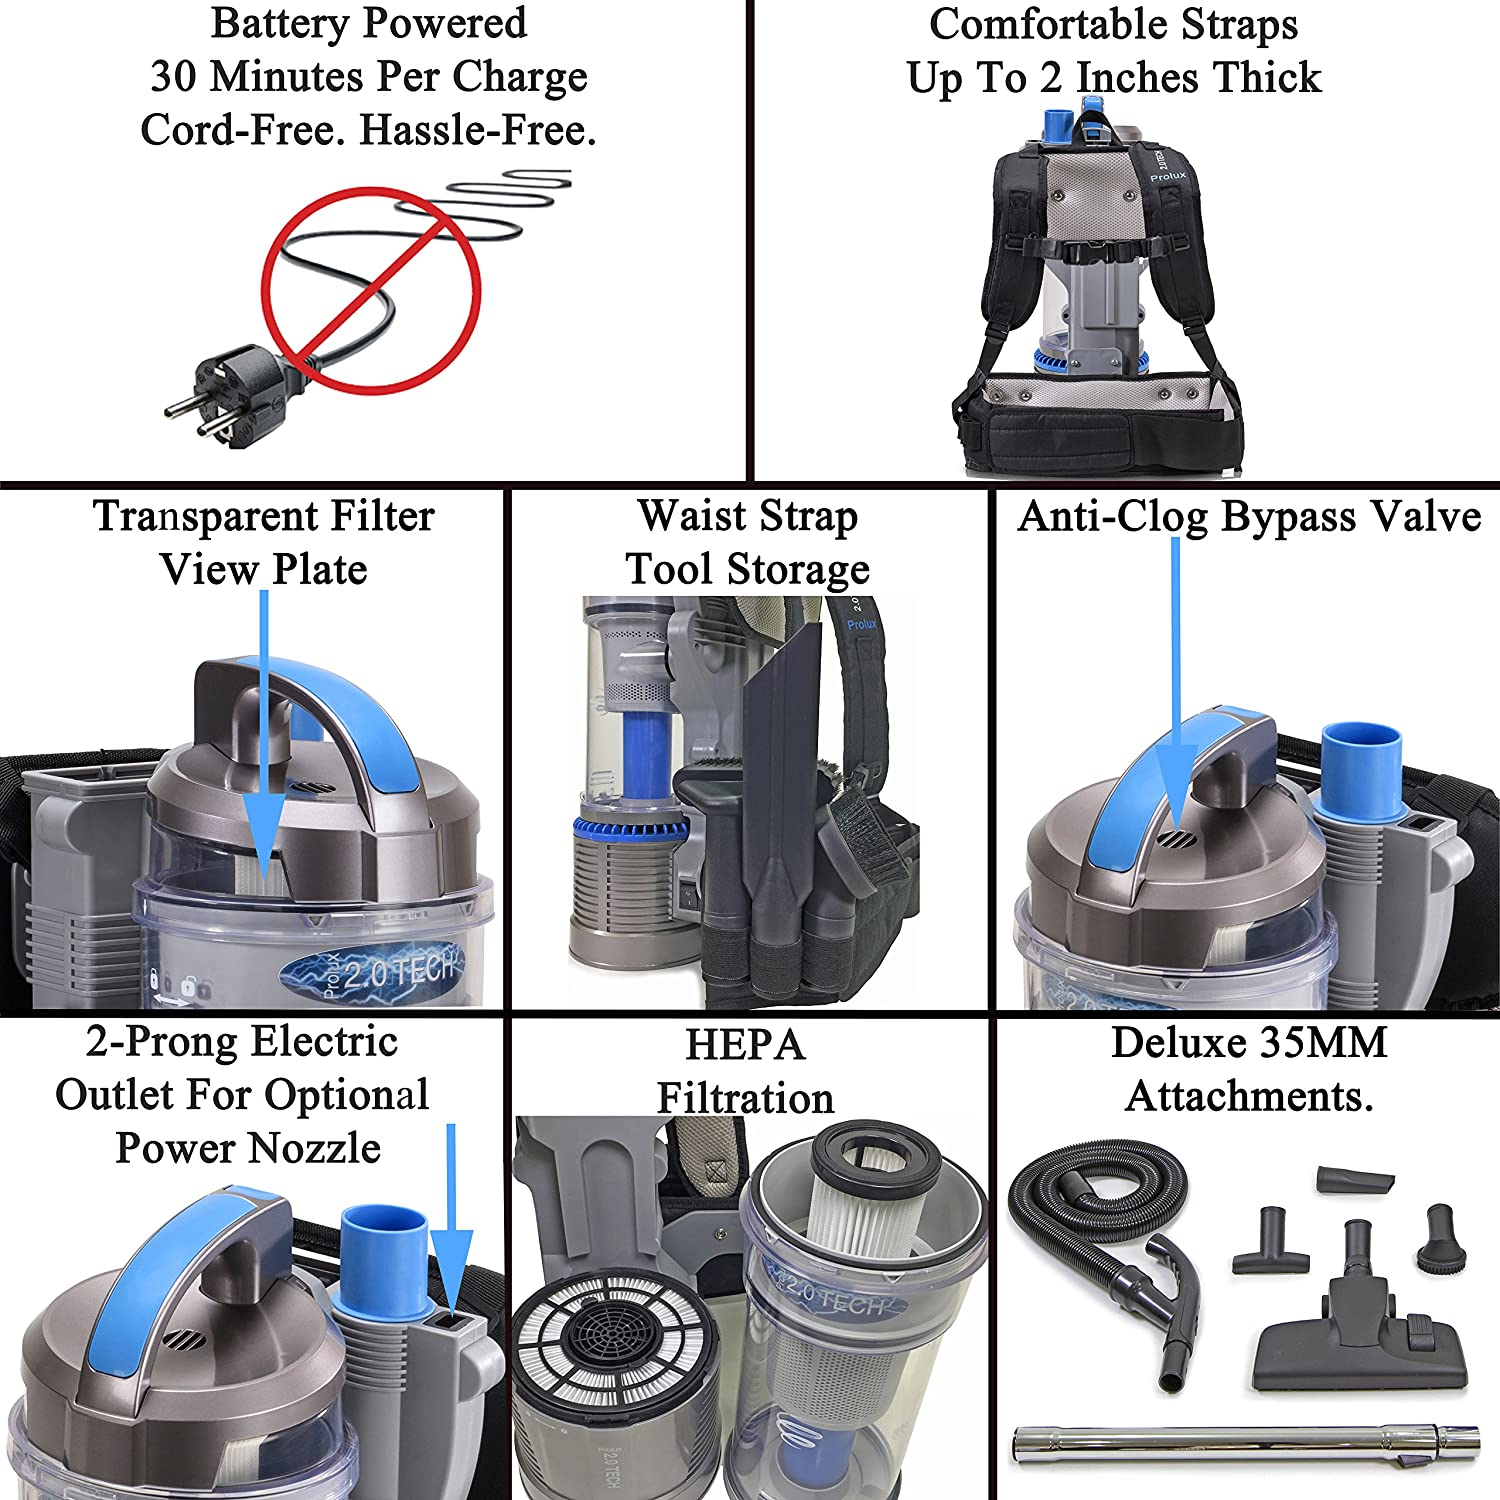 Prolux 20 Cordless Bagless Backpack Vacuum With Work Lipo Charger This Balancer Can Be Used To 2 3 Lithium Ion Battery